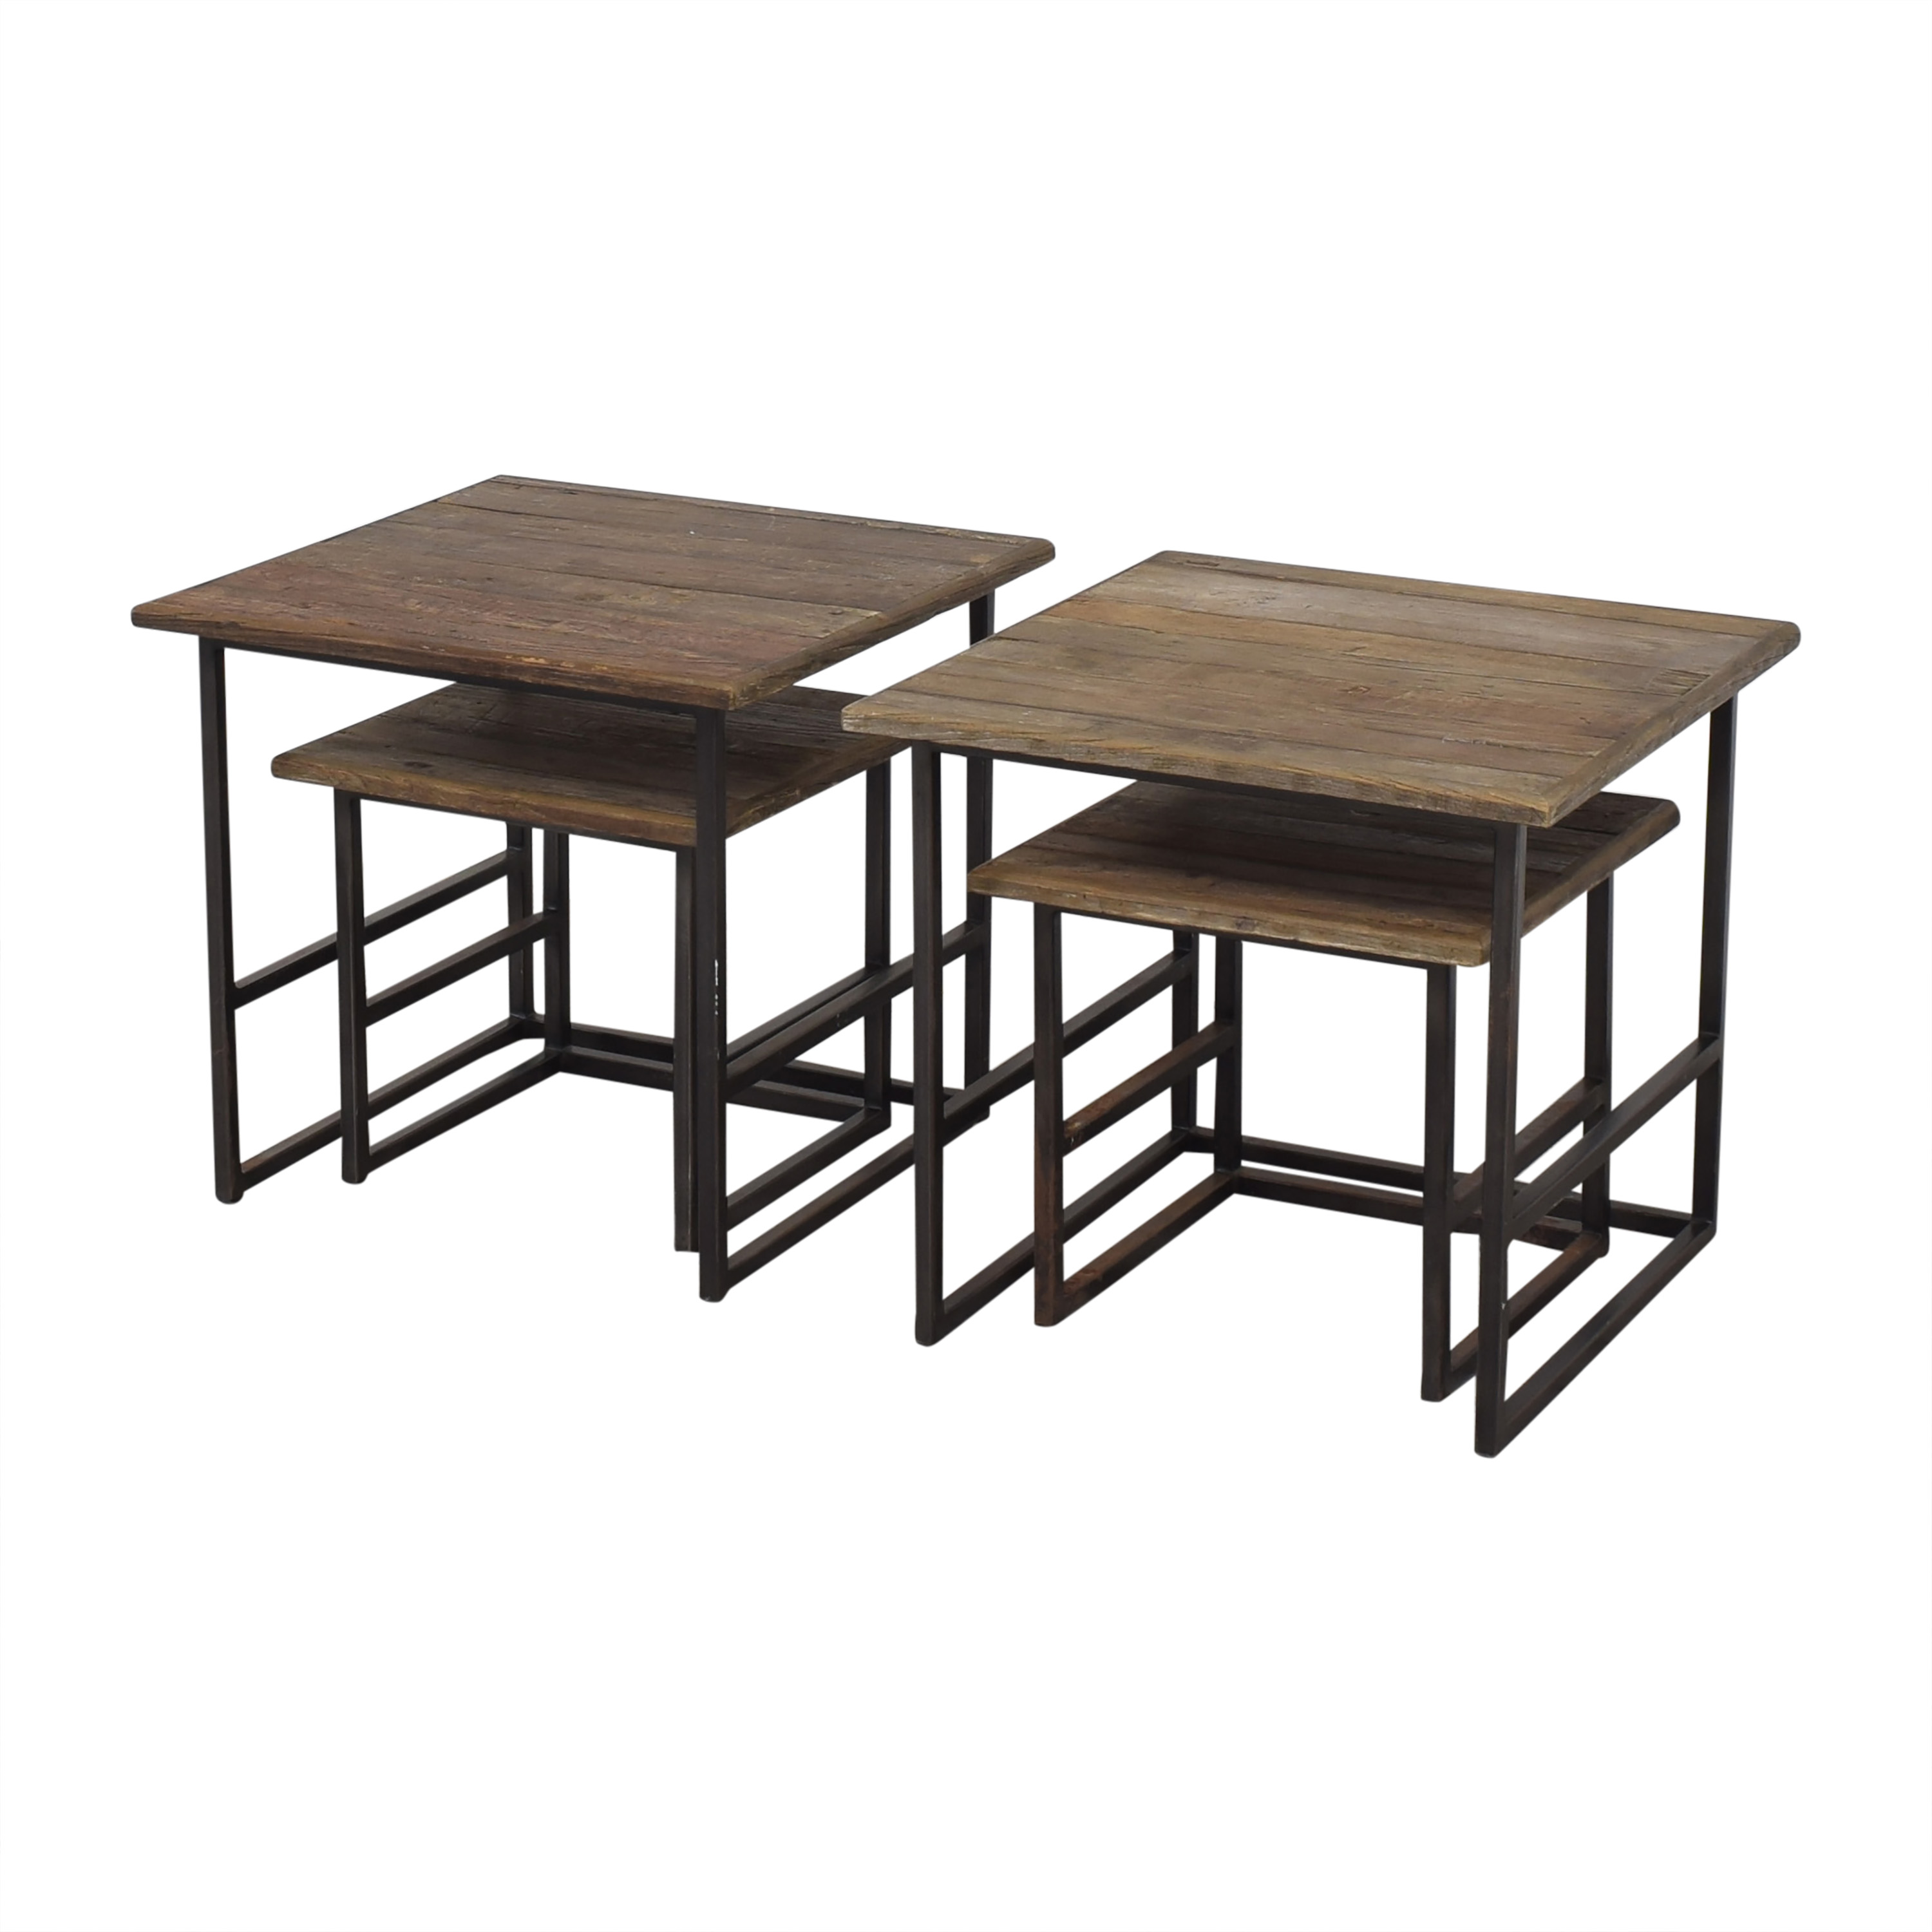 Restoration Hardware Restoration Hardware Rustic Nesting Side Tables pa